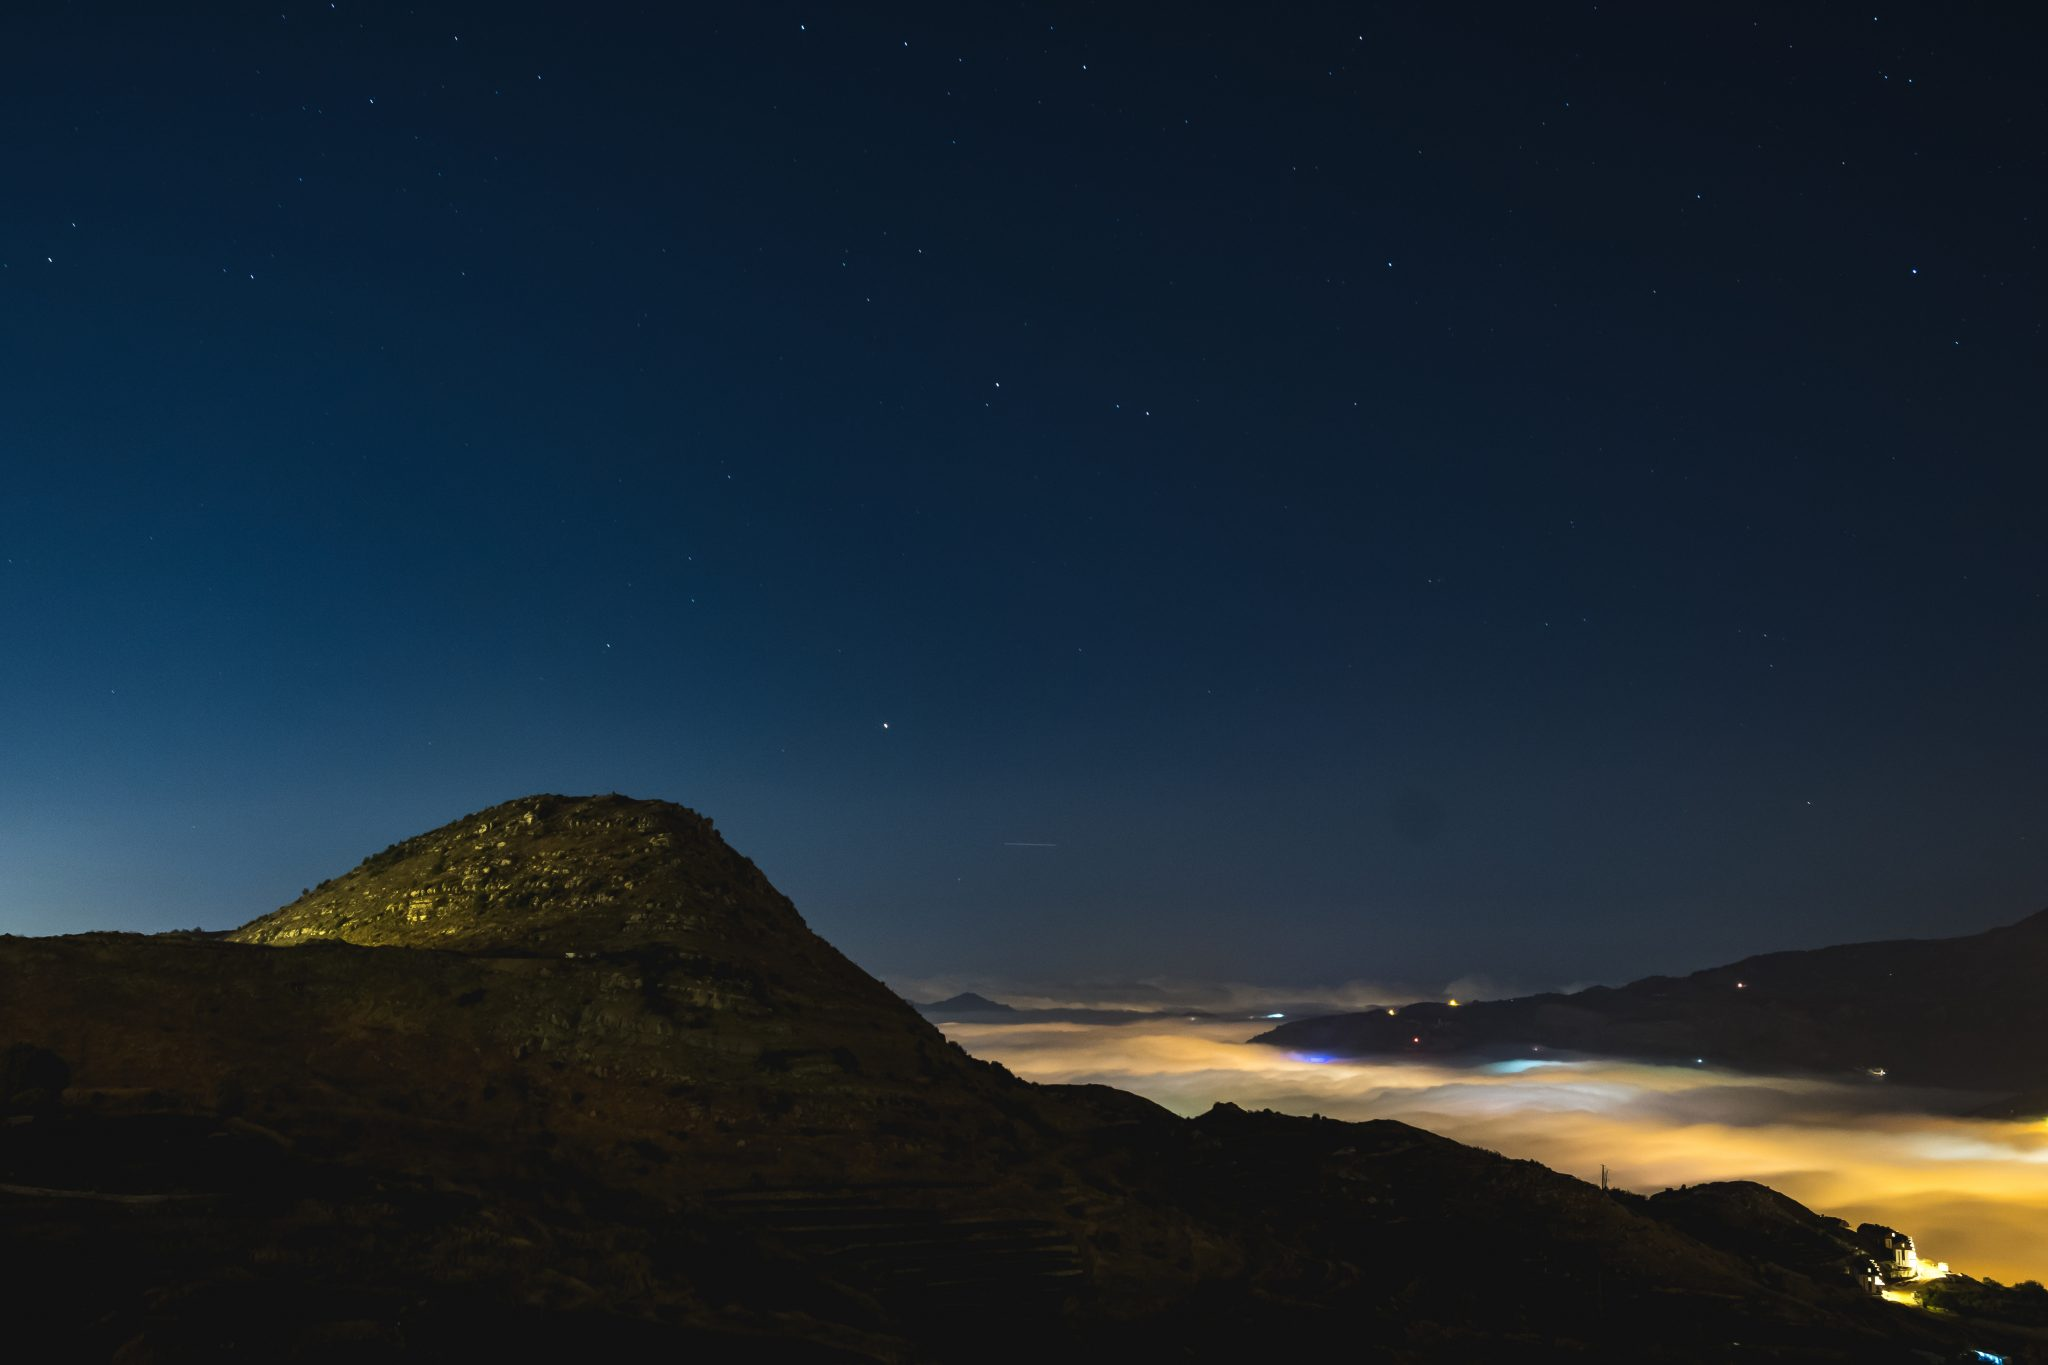 Panoramic view of the village of Faraya Hrajel in the lebanese mountain at night from above the clouds photo by Jo Kassis